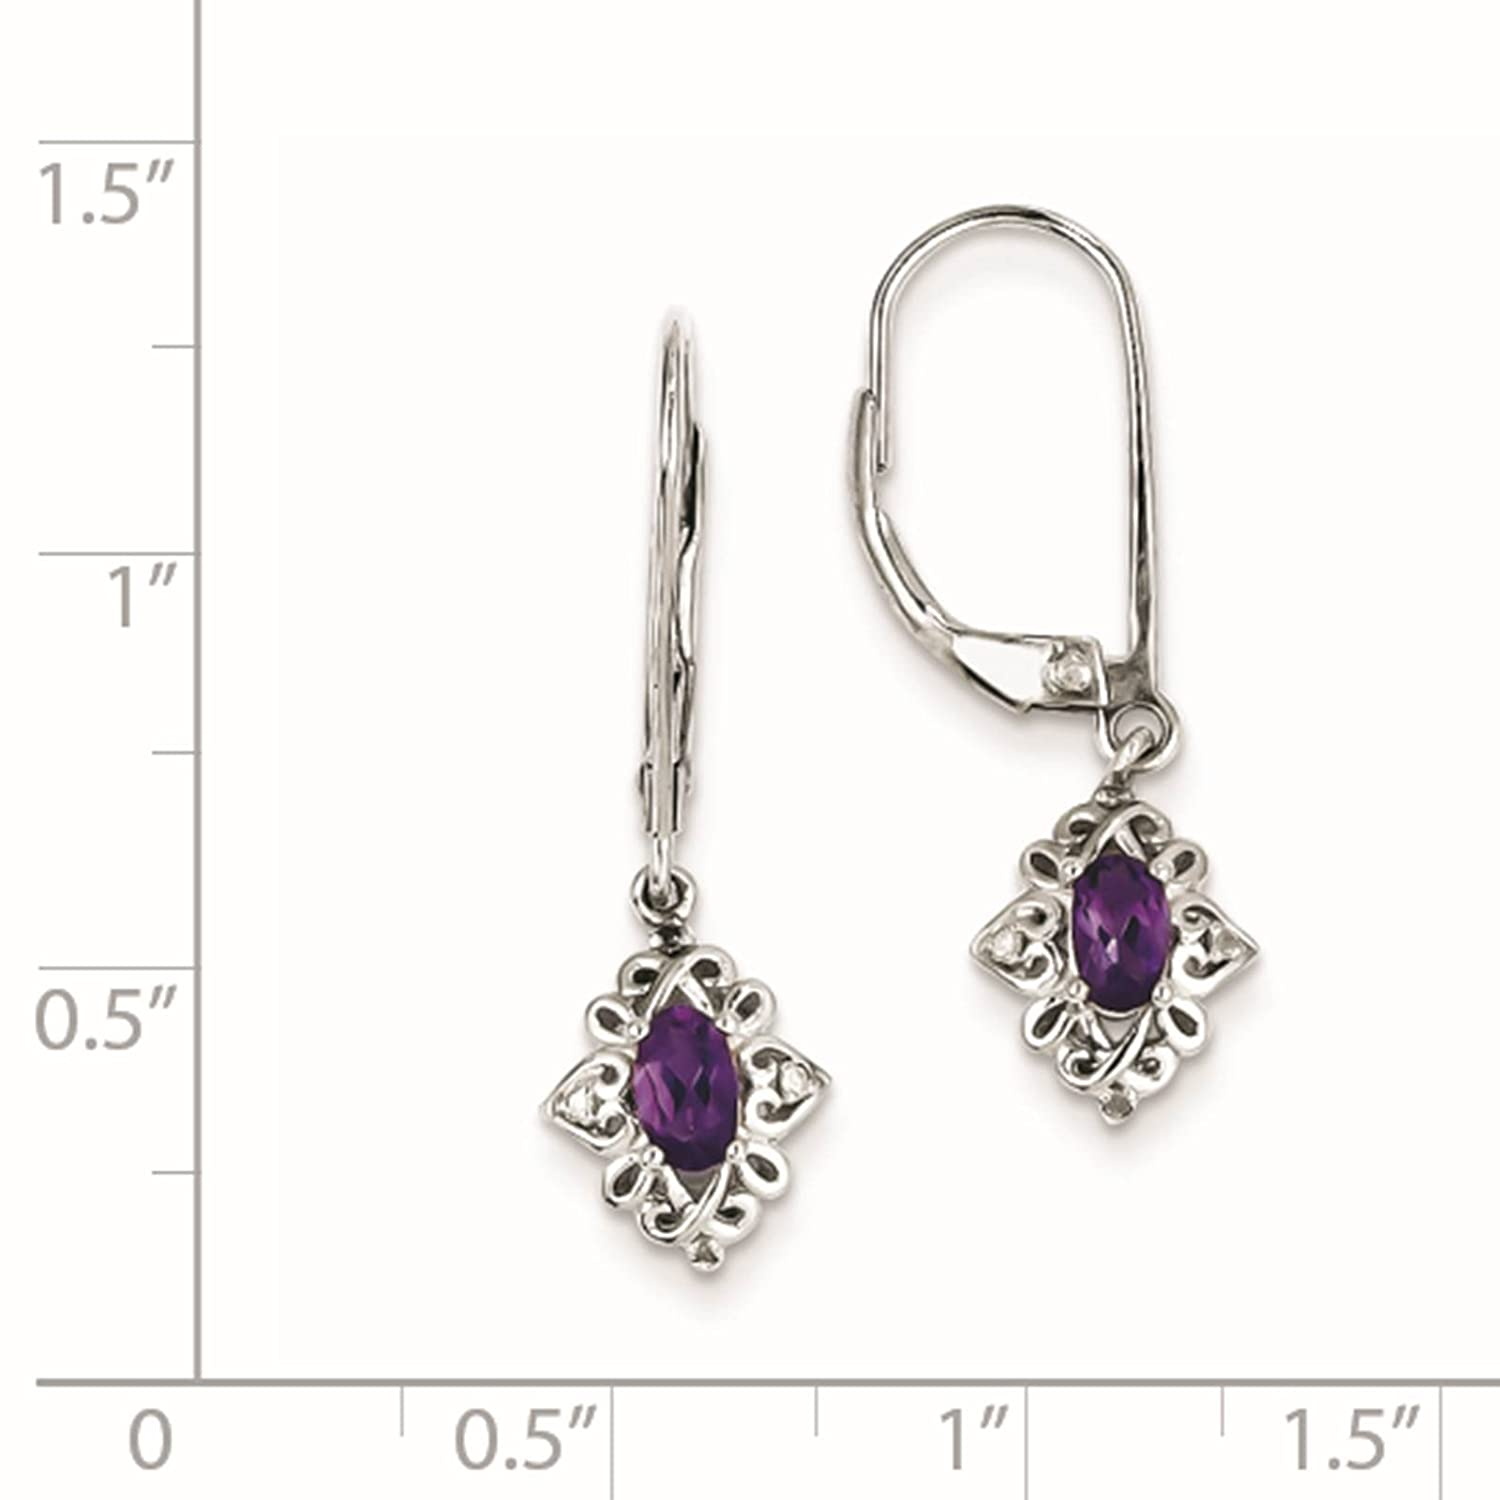 14k White Gold Cubic Zirconia Princess Cut Stud Earrings with Screw Backs Manufactured for Art and Molly 14KW-SQCZ3MM-SC